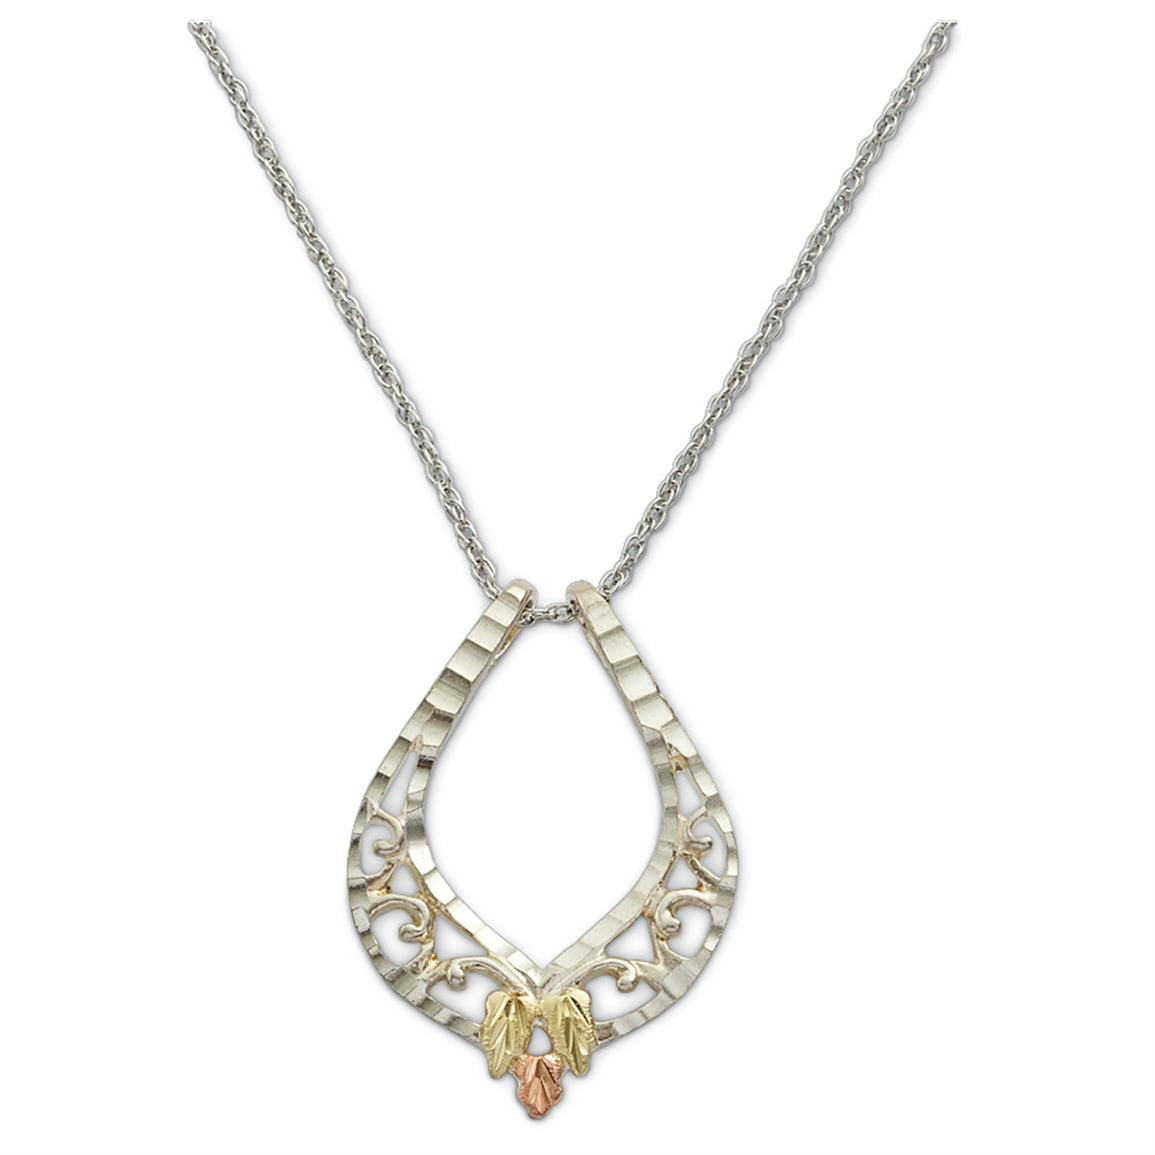 Landstrom's Black Hills Gold Teardrop Necklace